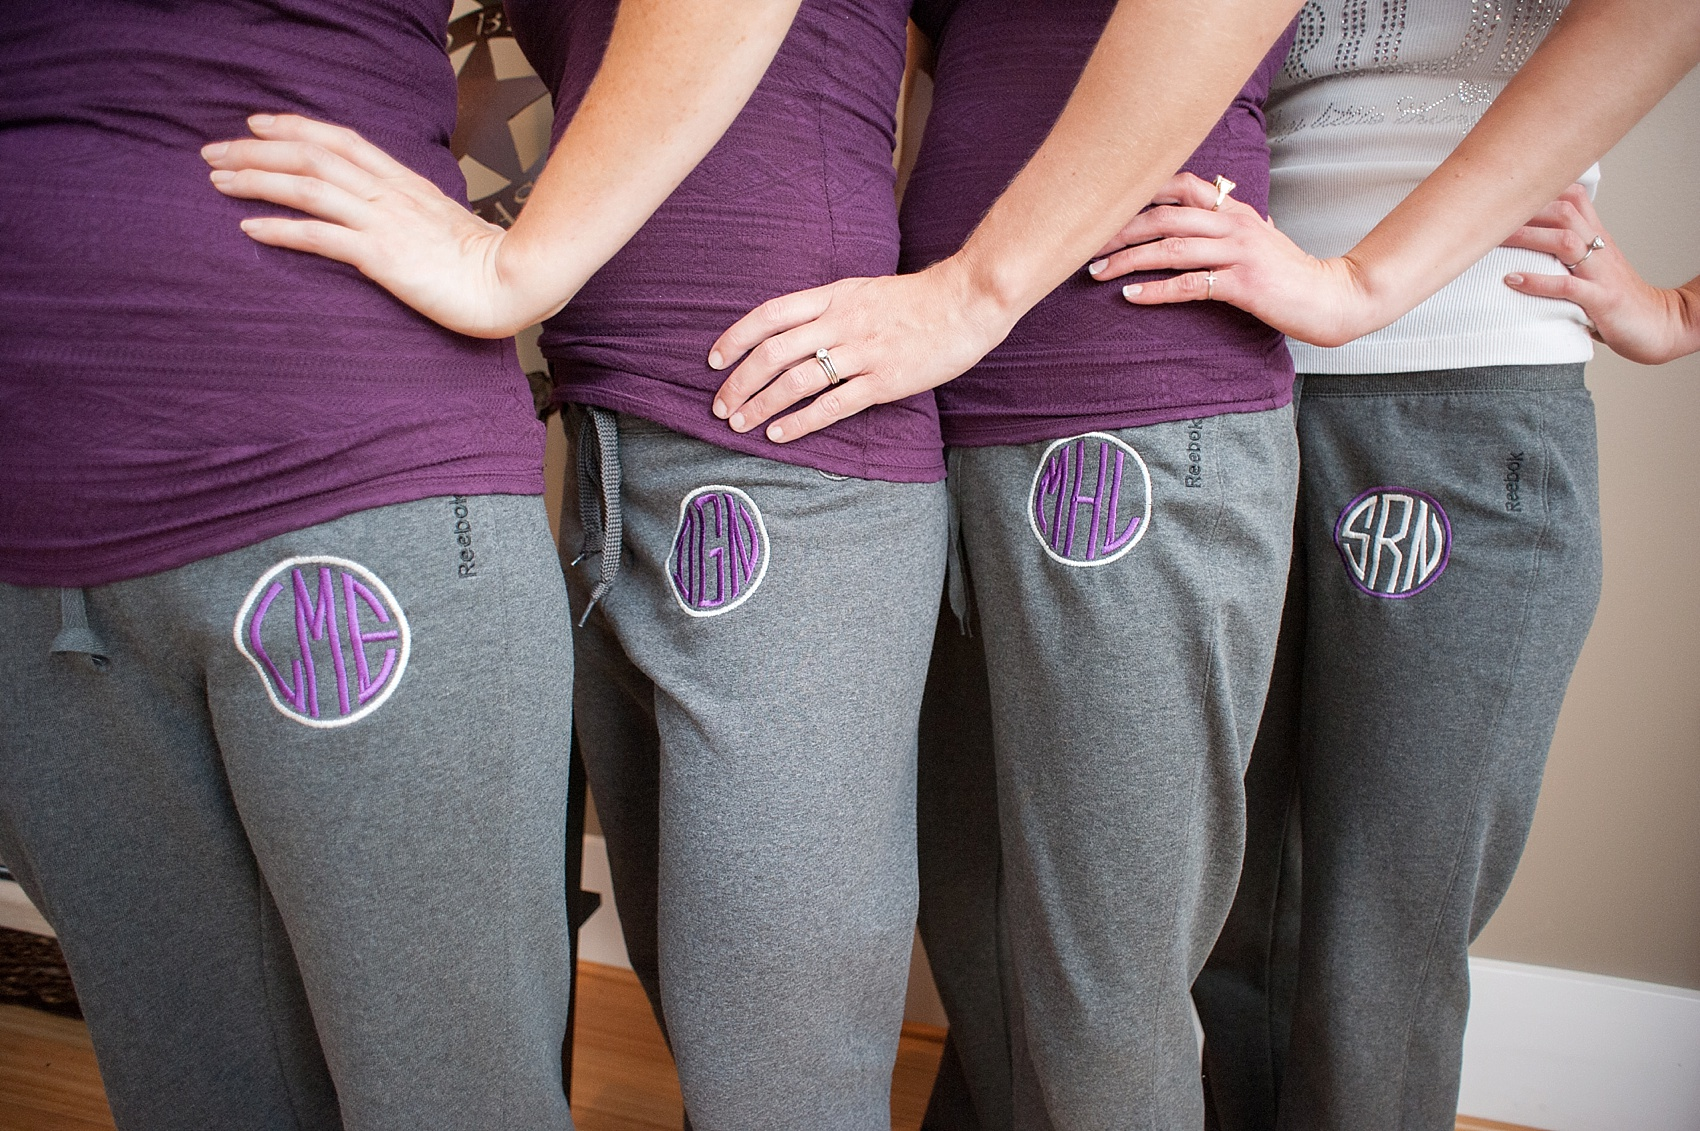 Monogrammed bridal party sweatpants for downtown Cincinnati, Ohio wedding at The Center. Photos by Mikkel Paige Photography.